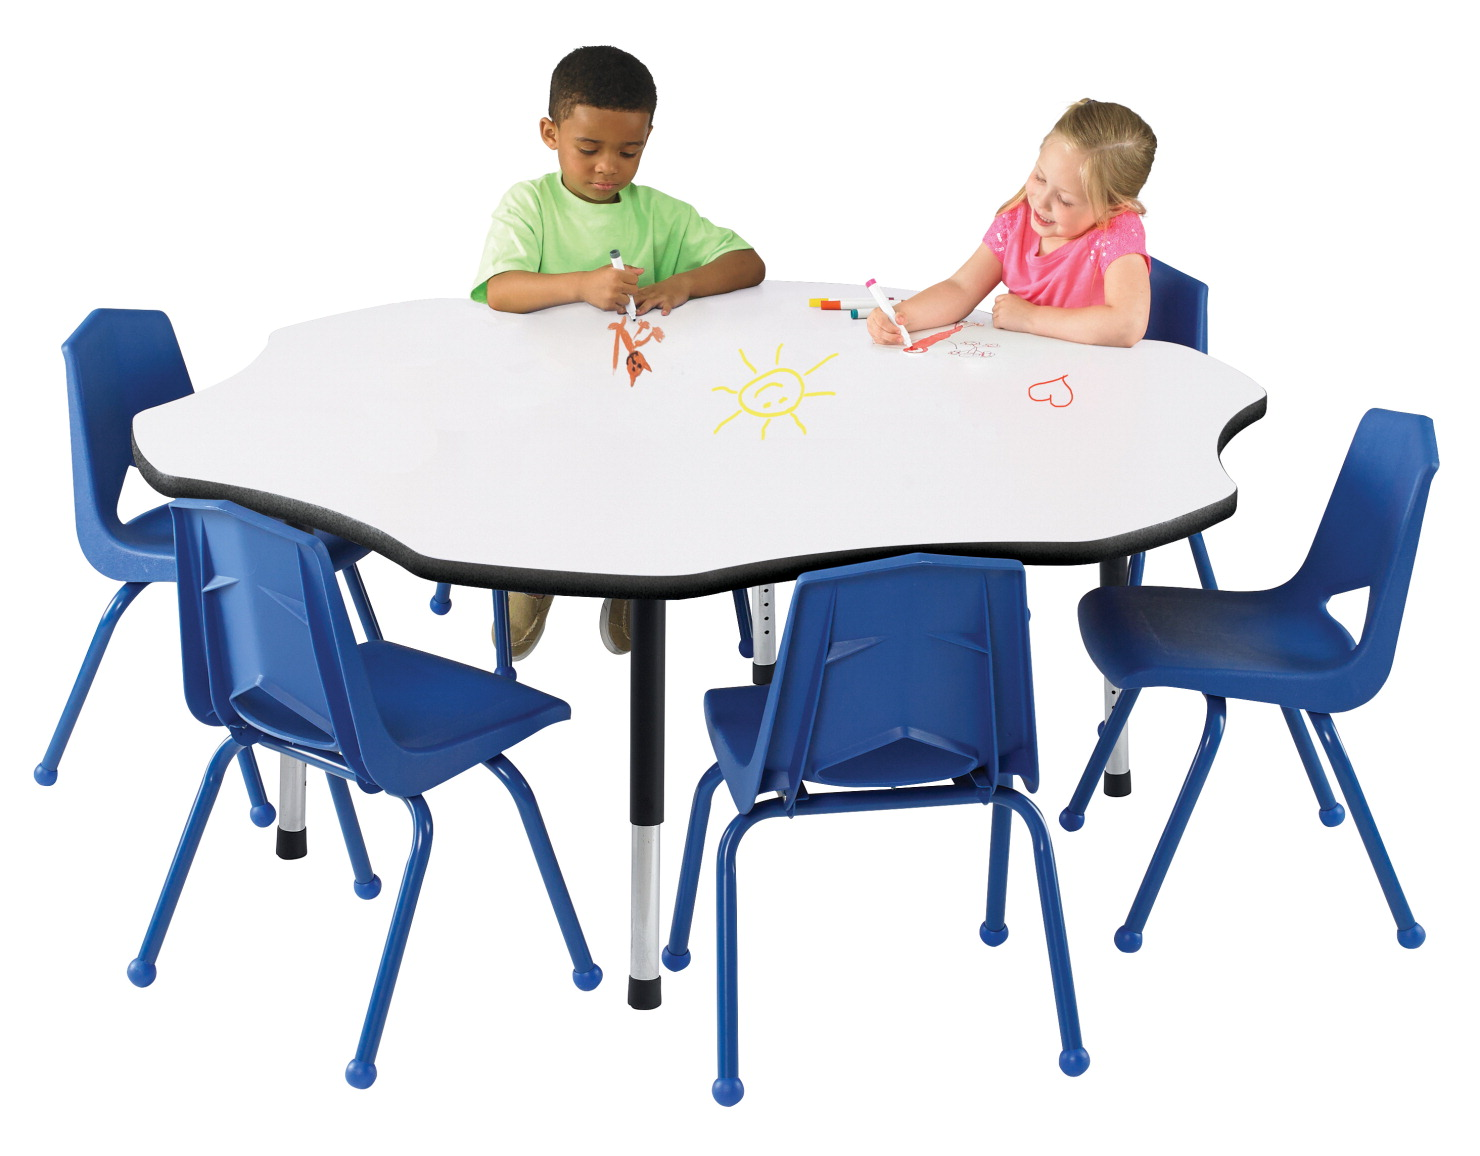 Classroom select markerboard activity table white for Table design using jsp